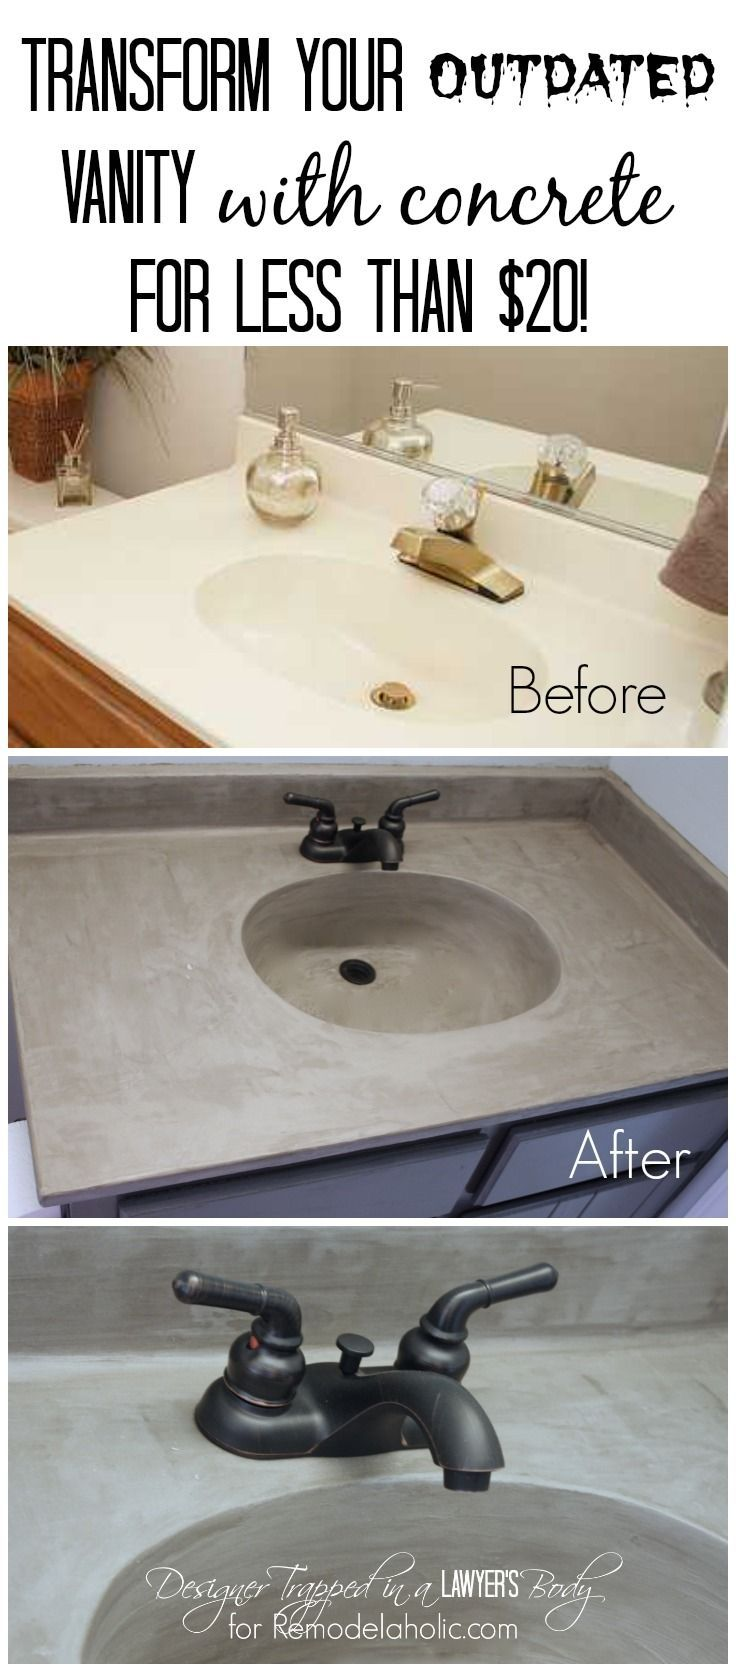 Learn How To Transform A Cultured Marble Vanity With Concrete On Remodelaholic 5121 513 4 Shelbi Thompson Bedroom Bathroom Thuringer I Used This Pin